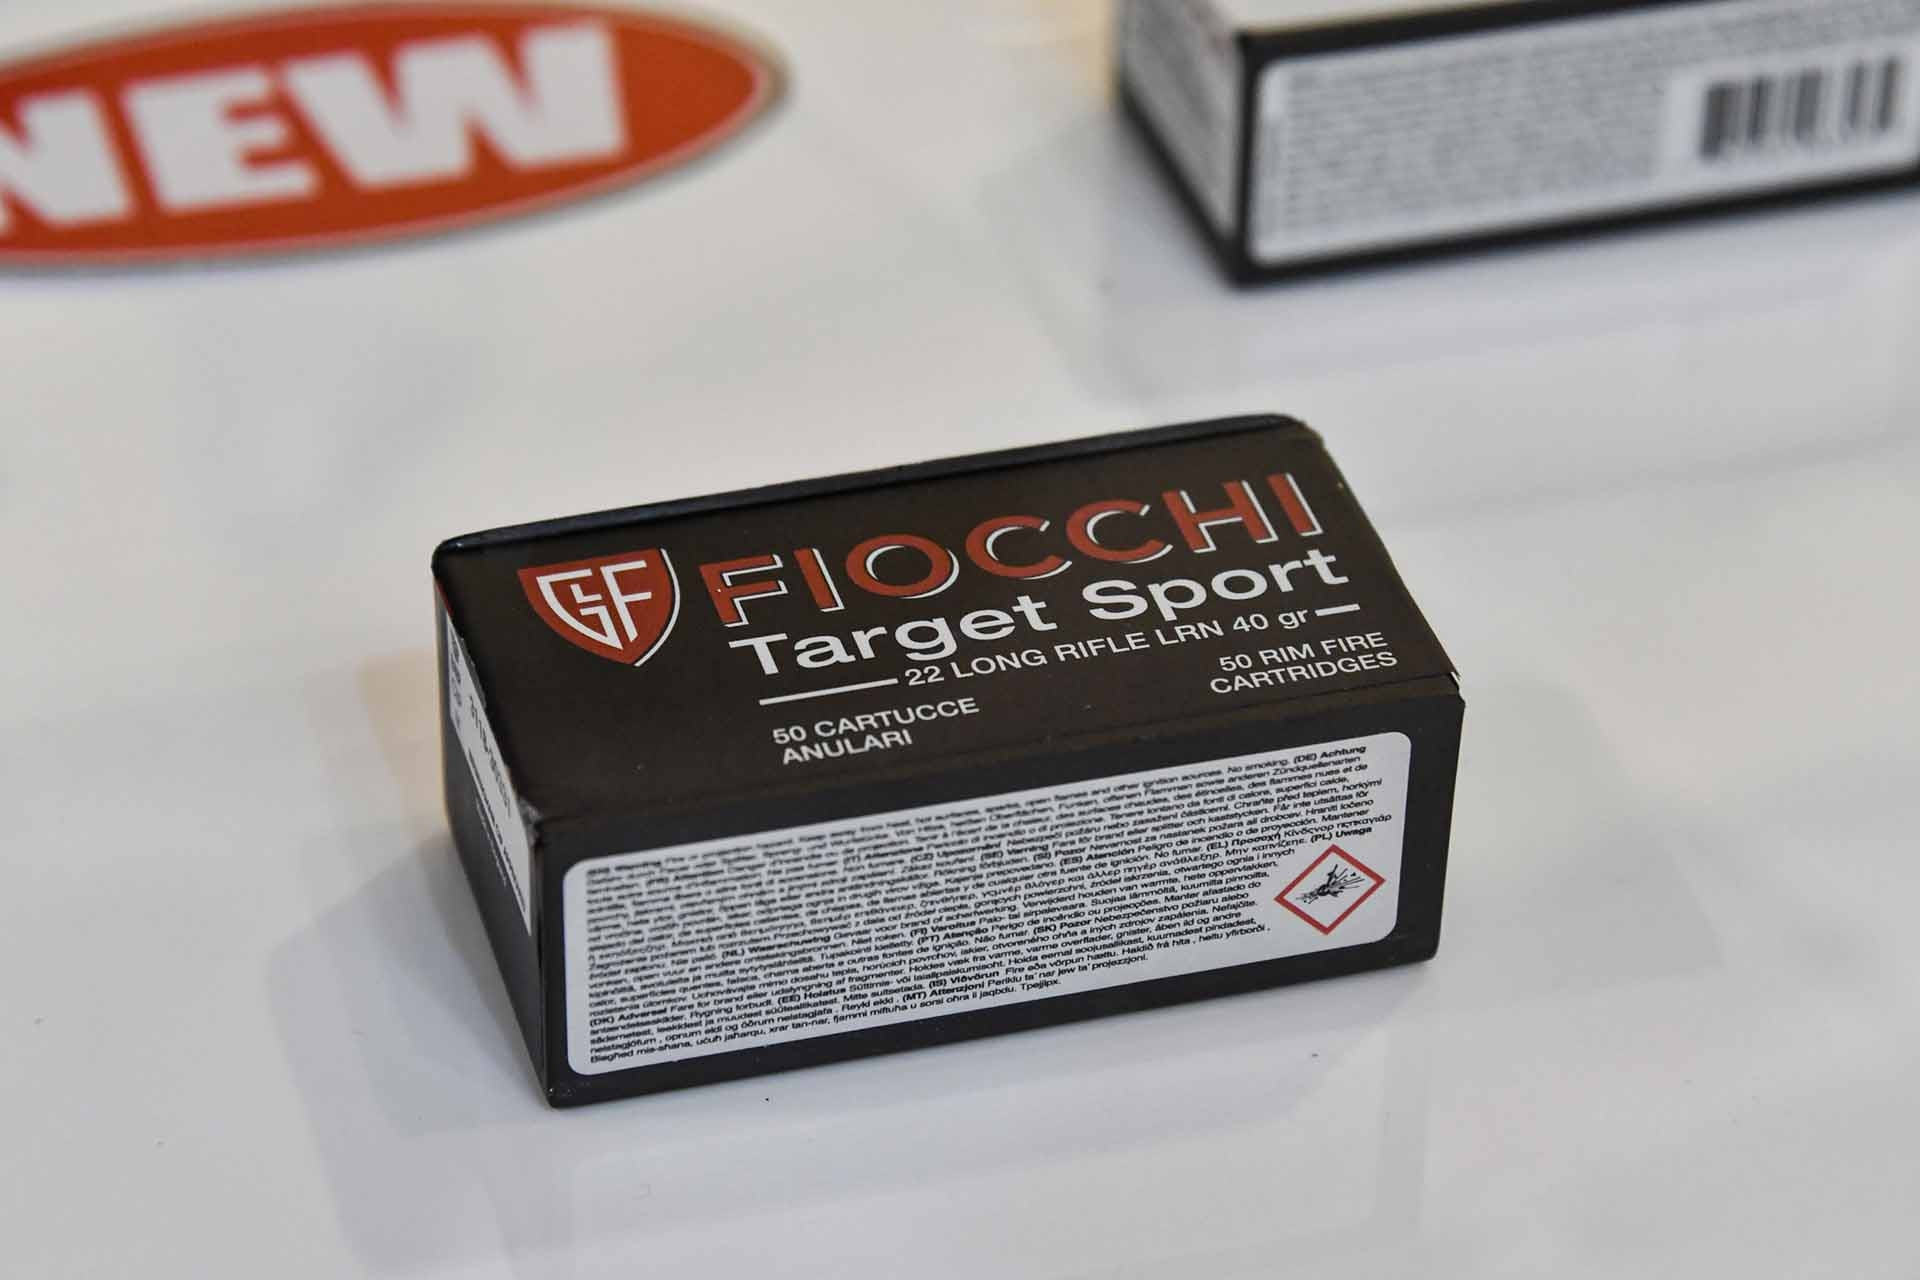 Fiocchi Target Shooting cartridges